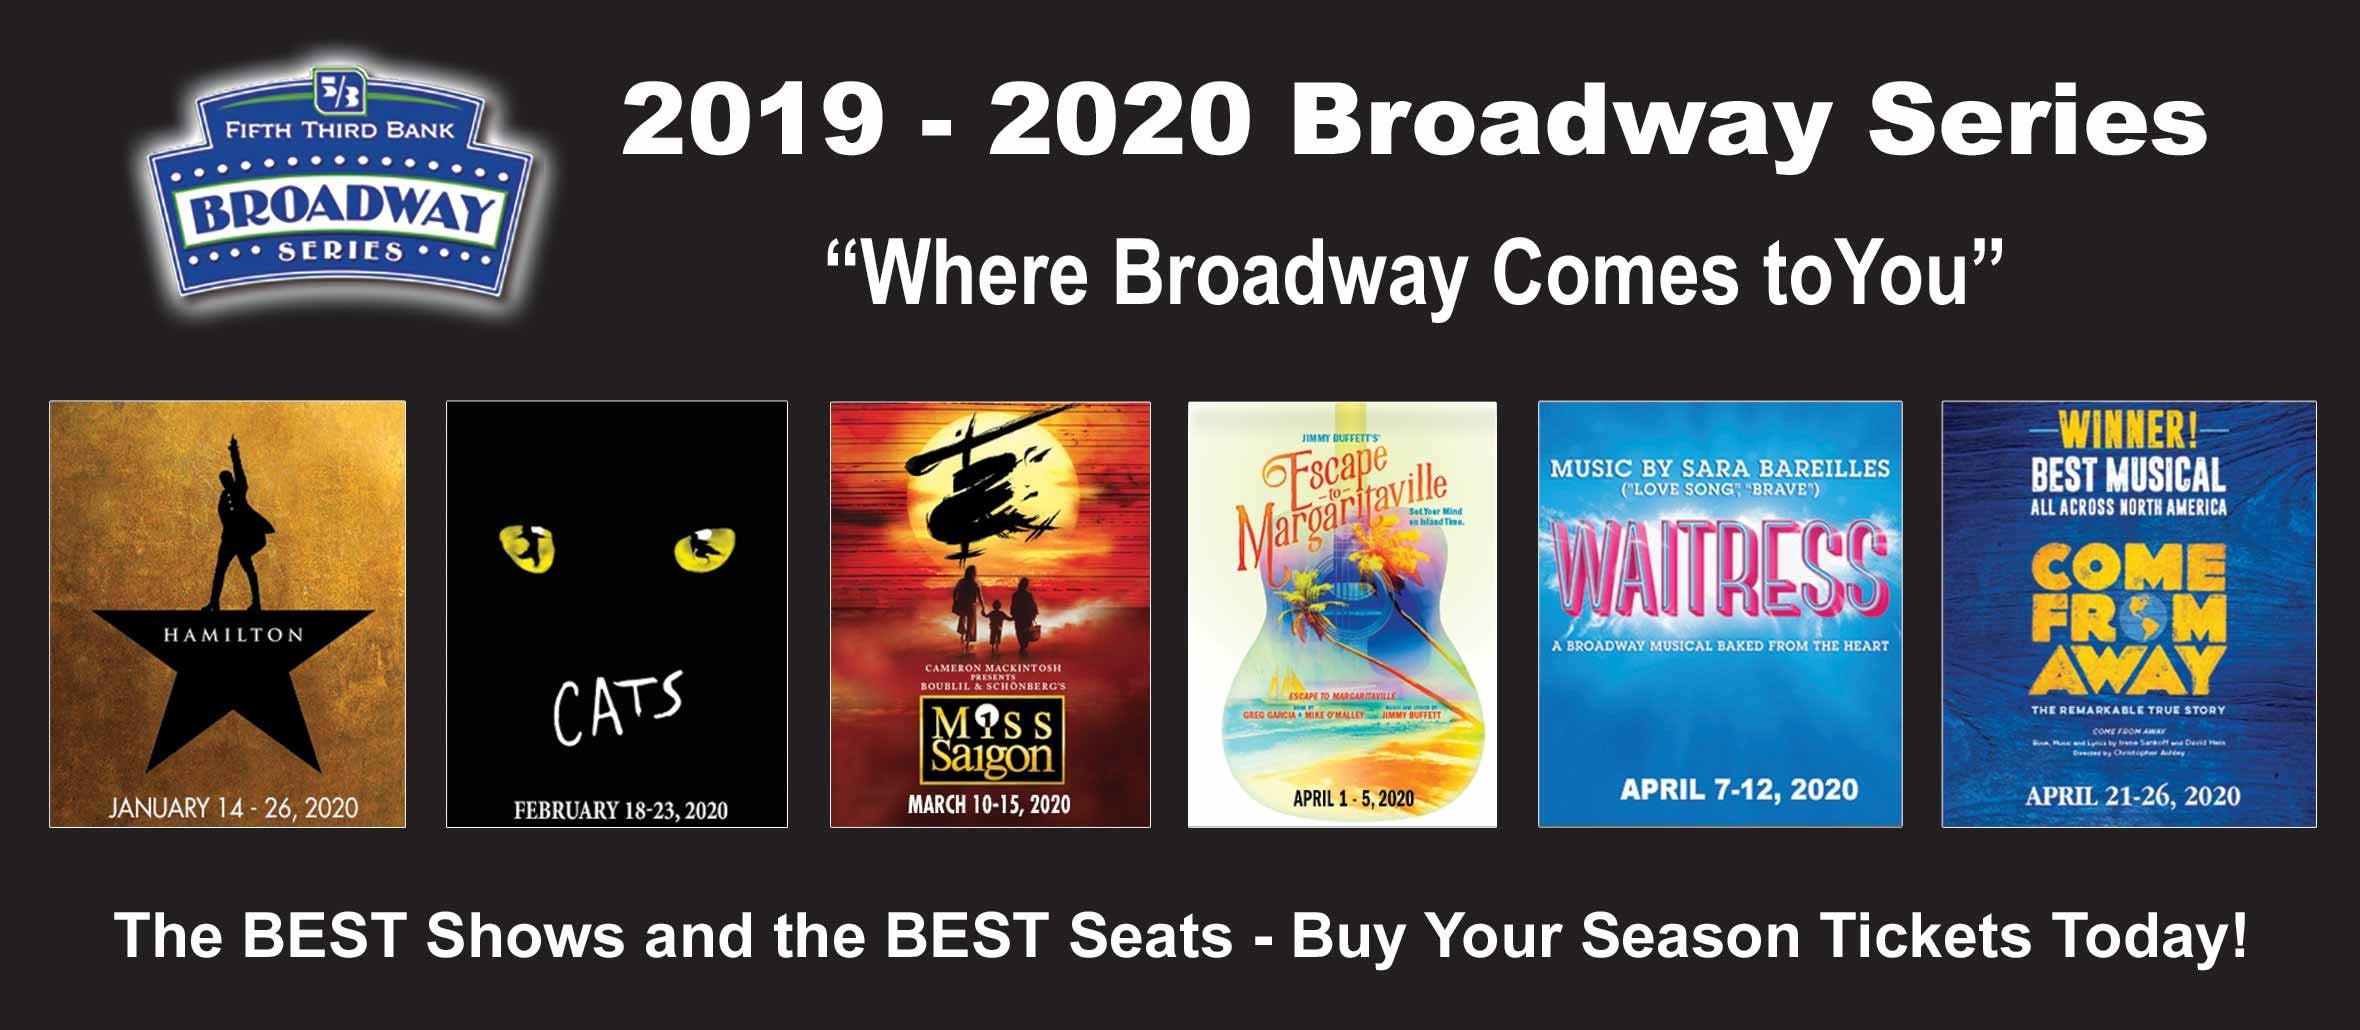 2019 2020 Broadway Home Page Banner